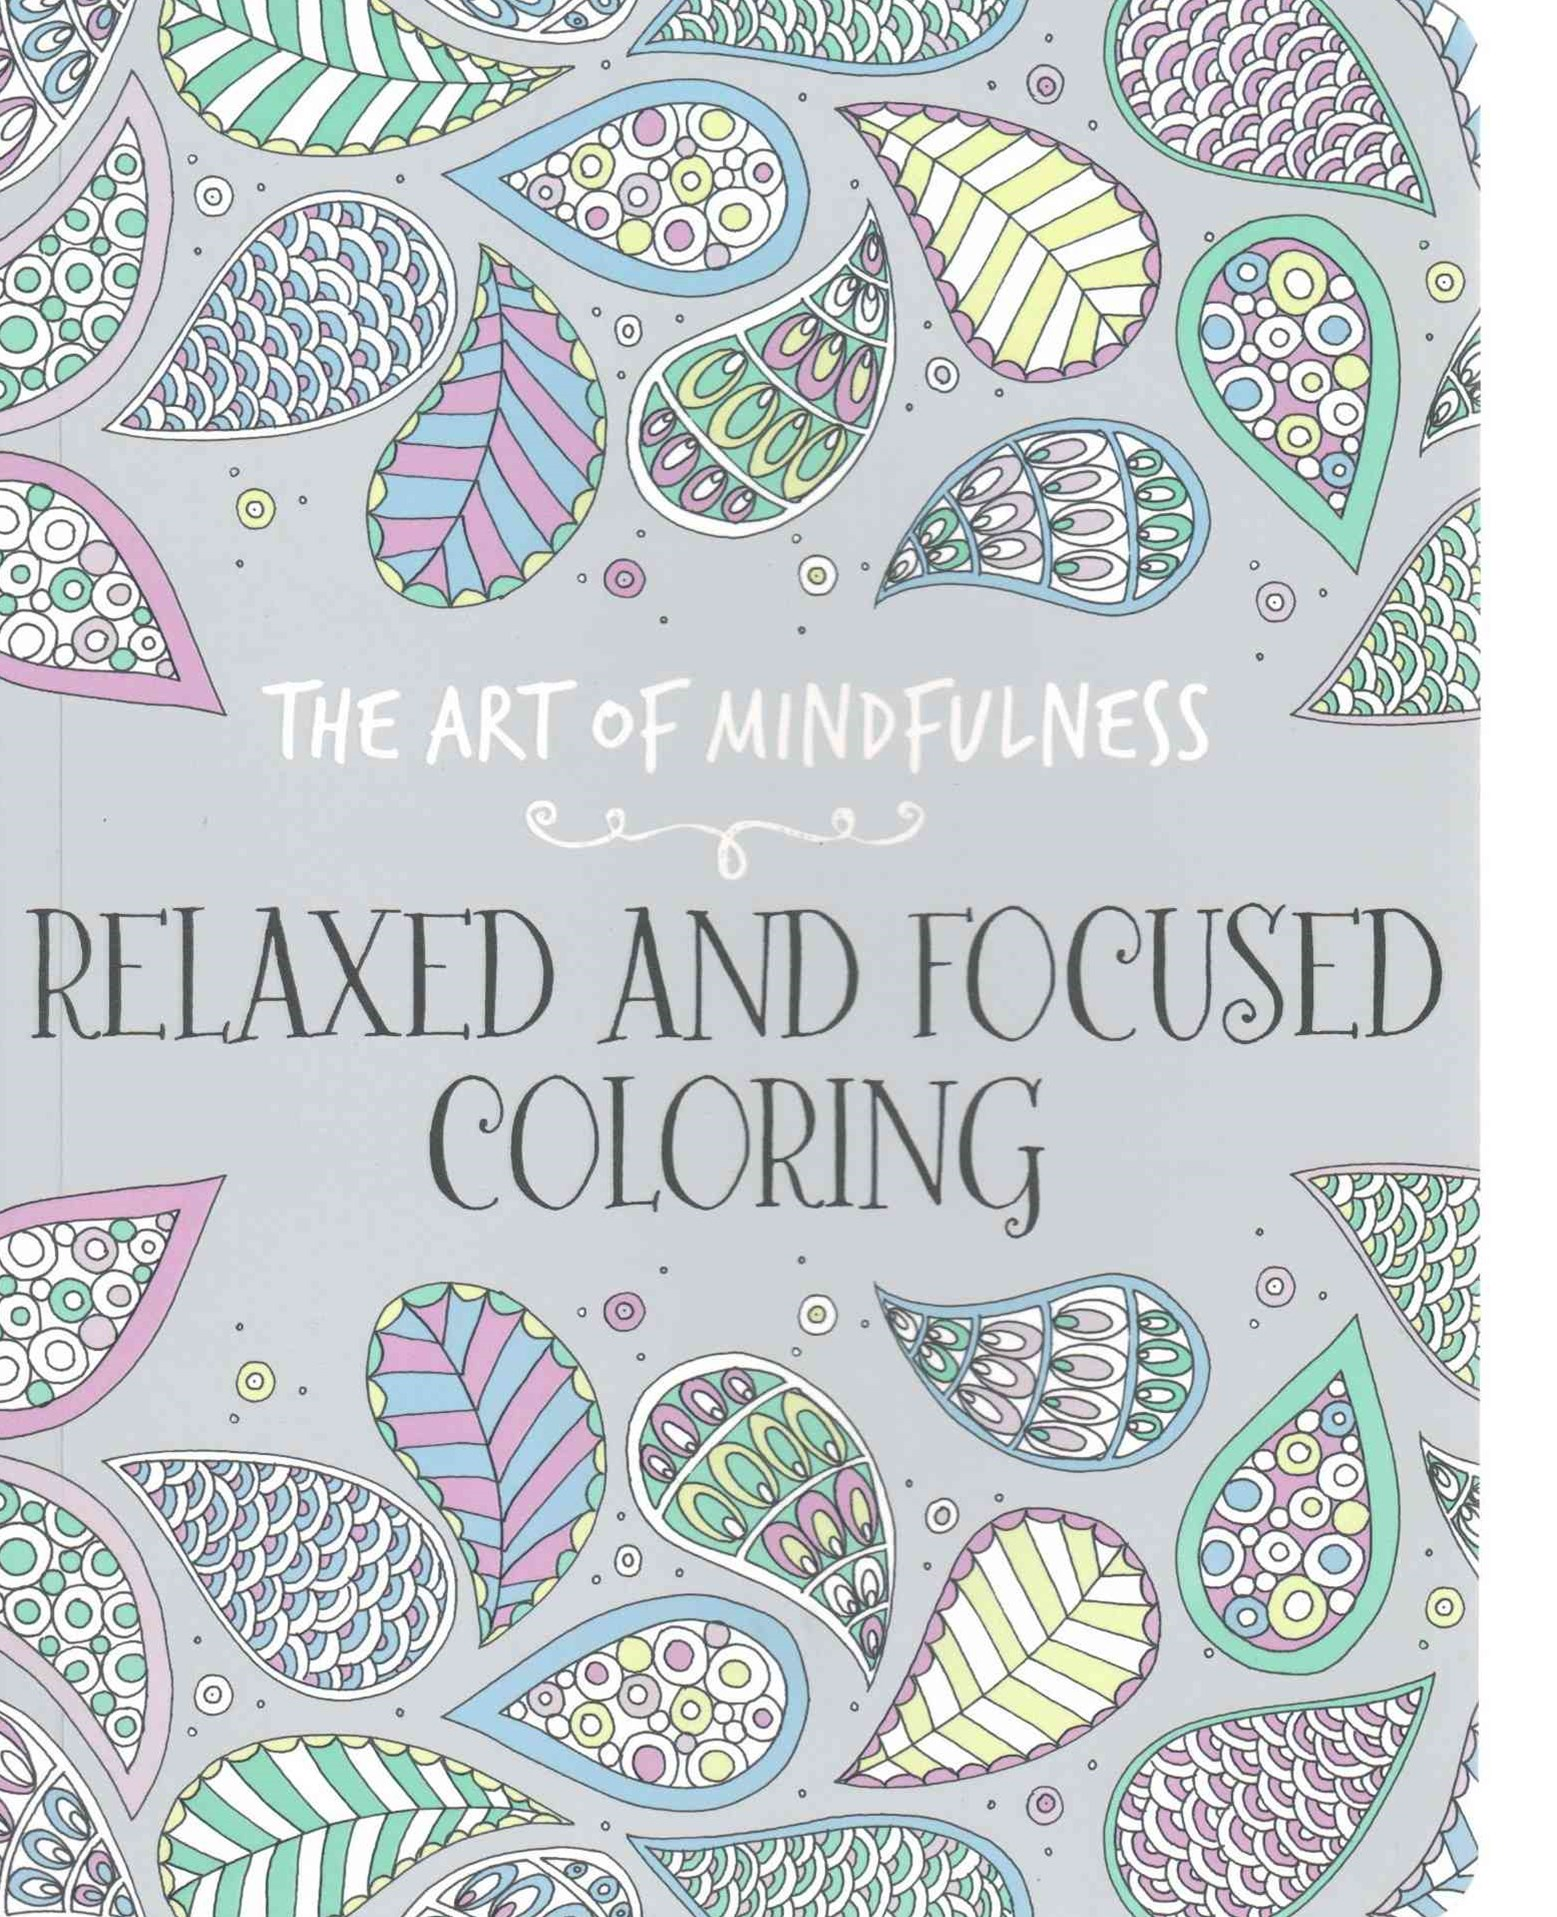 The Art of Mindfulness: Relaxed and Focused Coloring